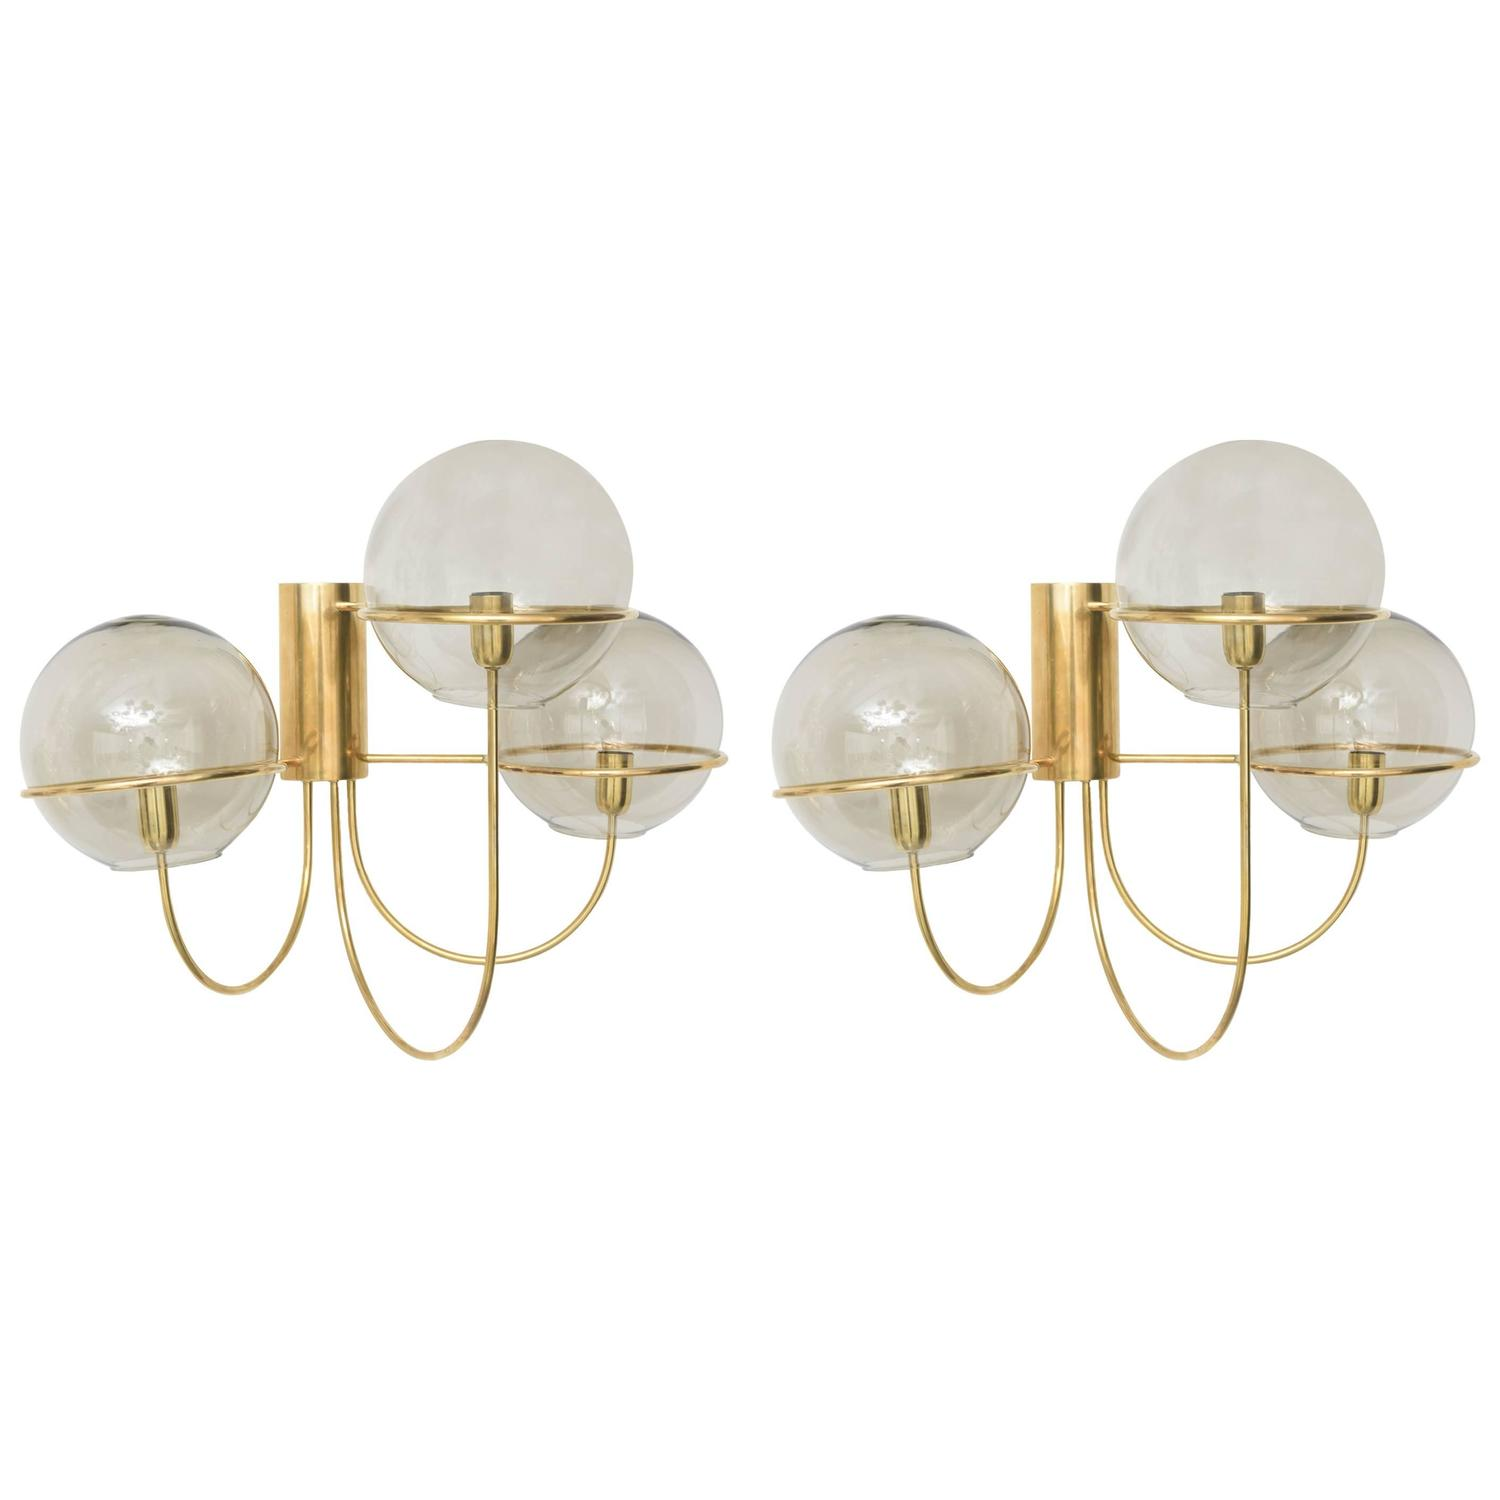 Wall Sconces Mid Century : Pair Large Mid-Century Modern Polished Brass Wall Sconces, Star Leuchten Koeln For Sale at 1stdibs